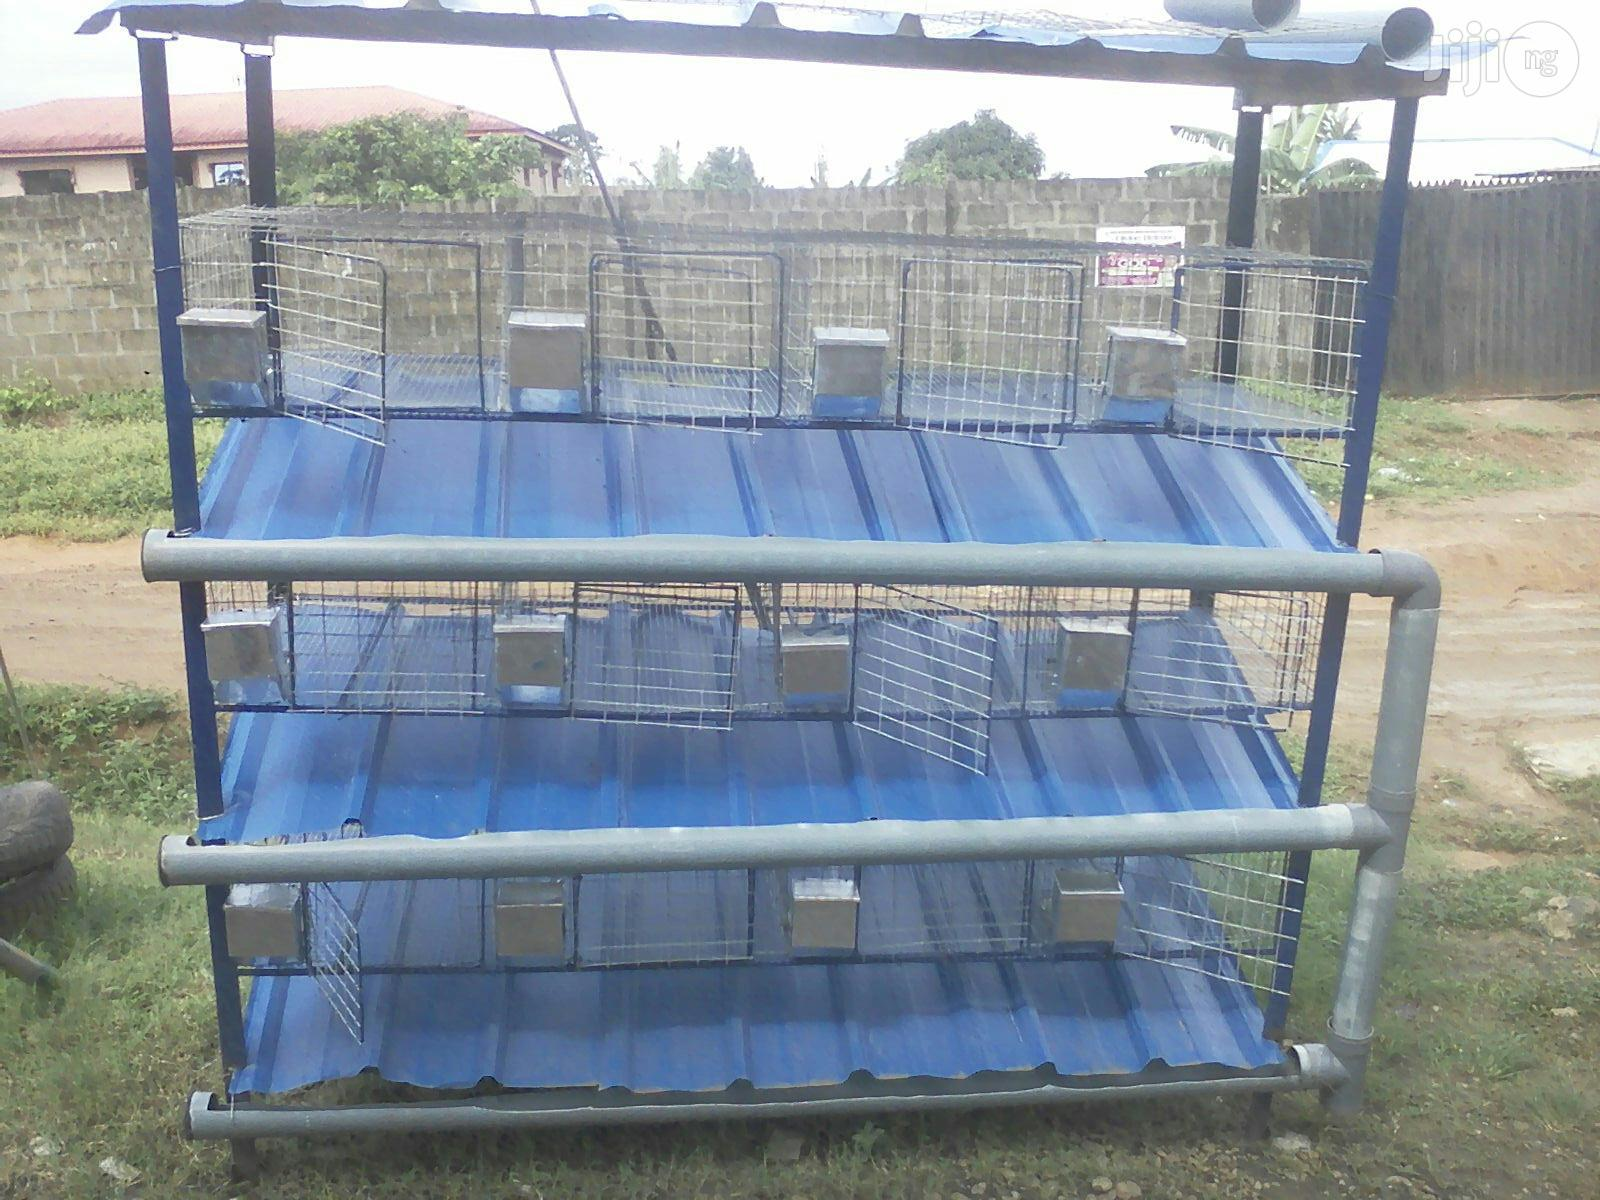 Cages For Rabbits, Birds, Mouse Etc For Sale | Farm Machinery & Equipment for sale in Alimosho, Lagos State, Nigeria